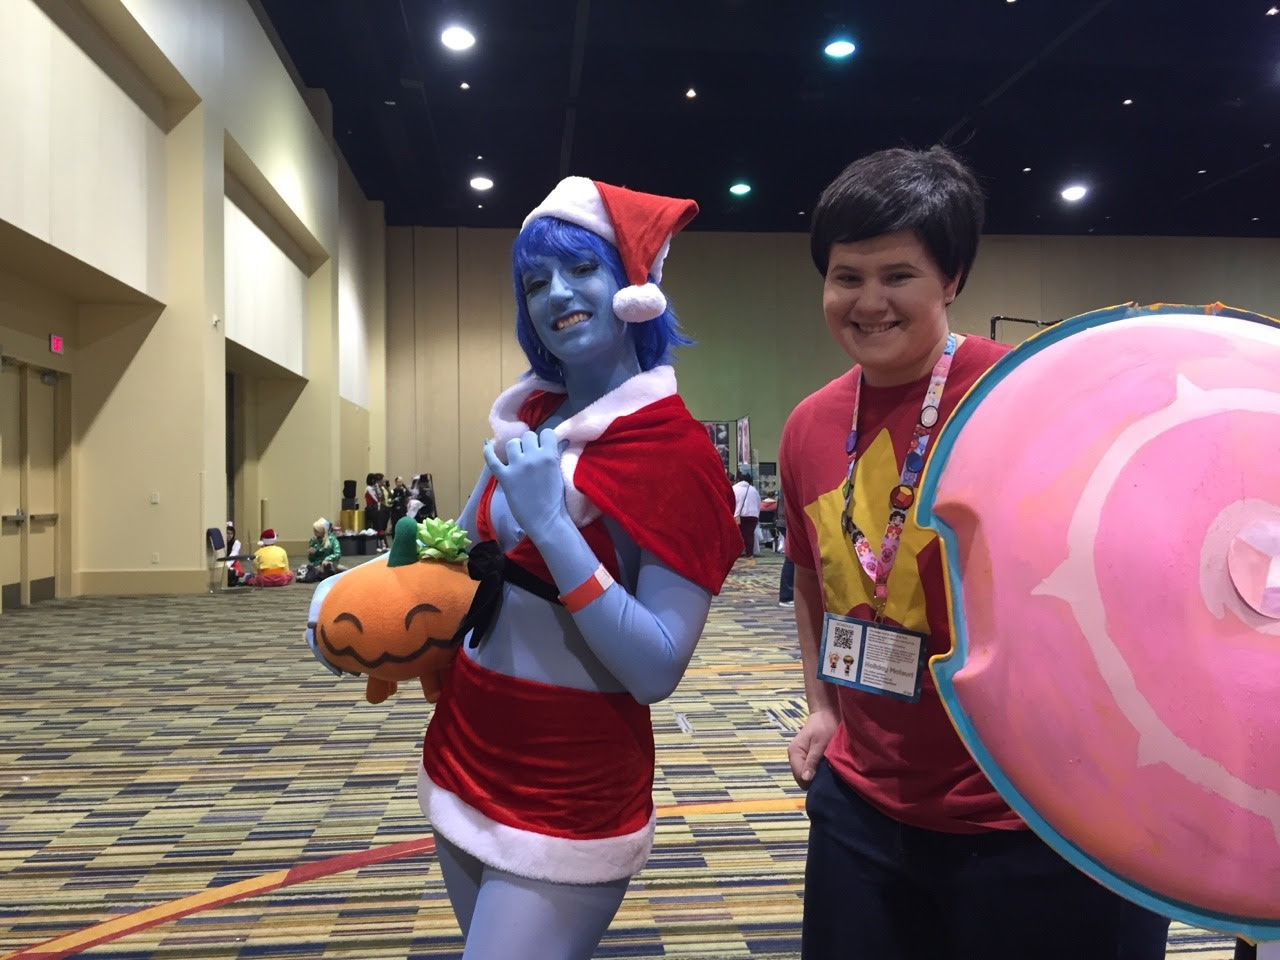 Had SO MUCH FUN at this year's holiday matsuri con as Steven! Merry Christmas everybody! (If you know/are one of the cosplayers shown here let me know so I can tag you properly!)